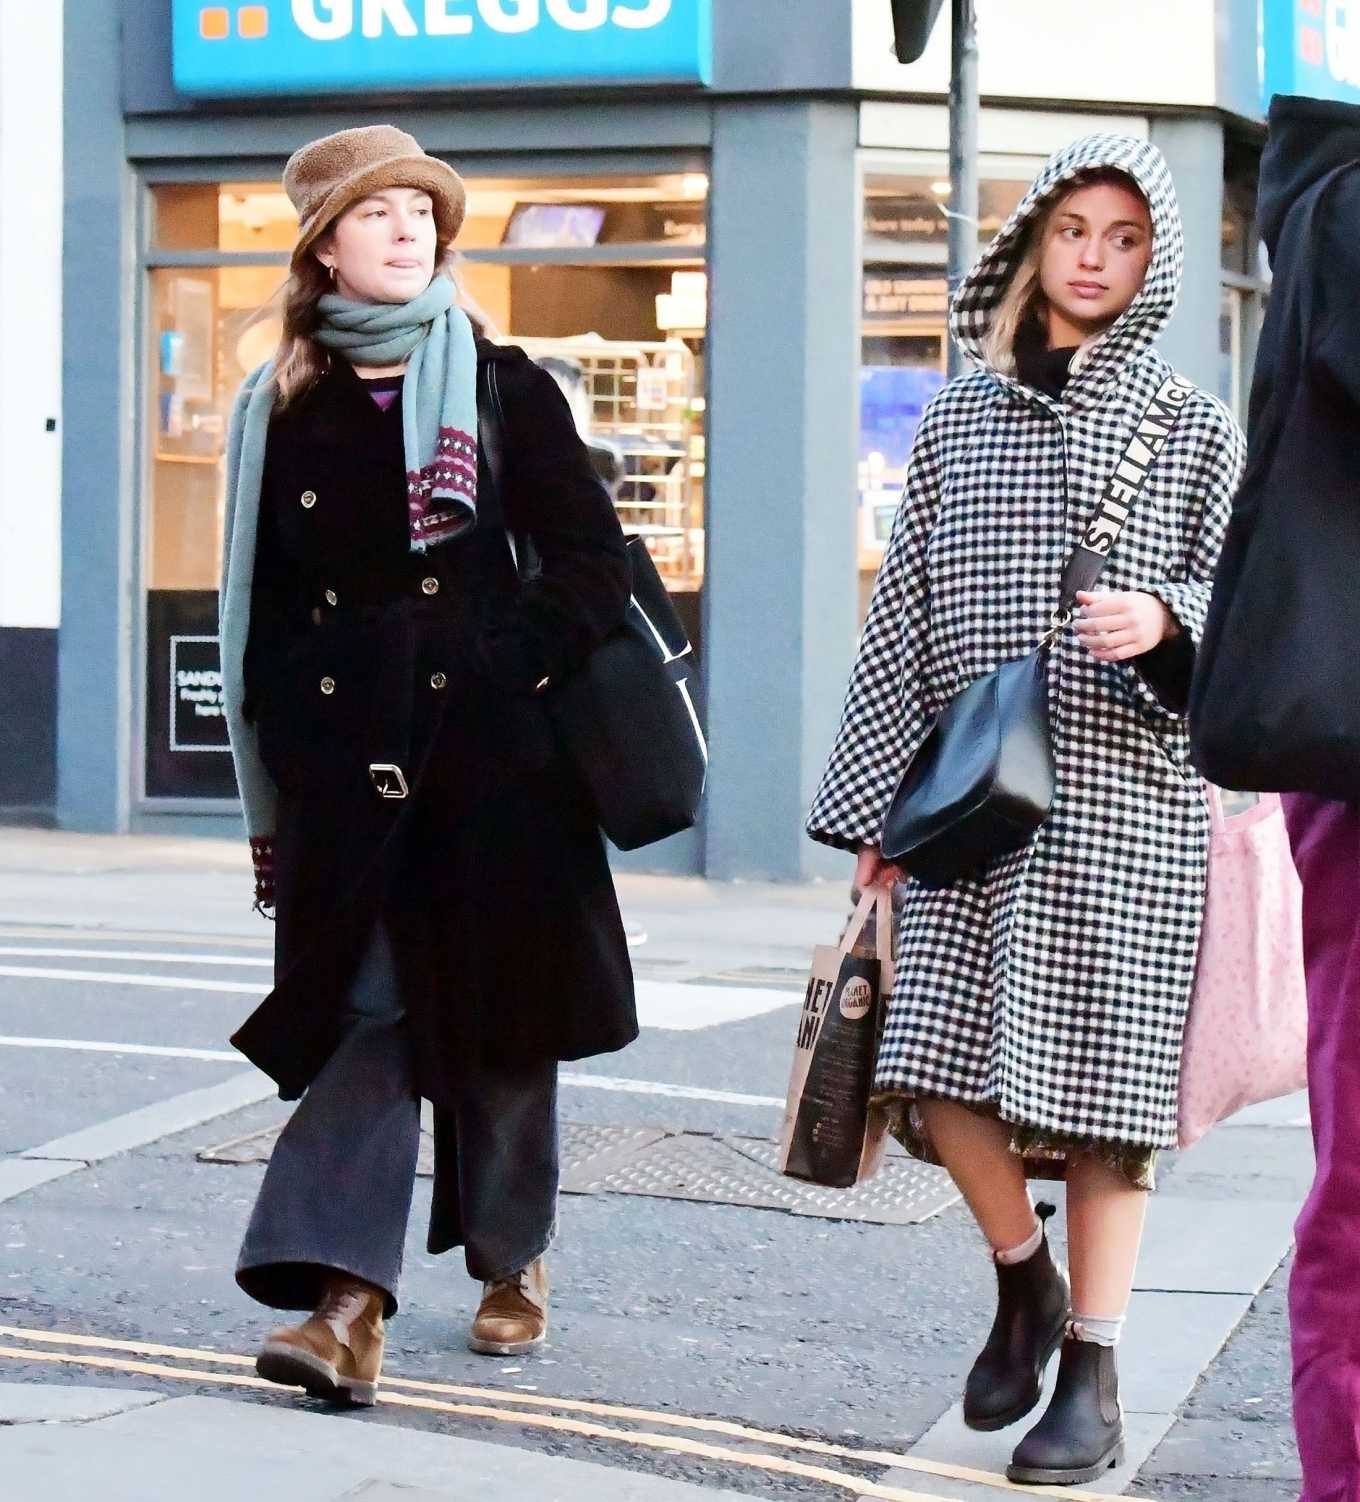 Amelia Windsor 2020 : Amelia Windsor – Looks stylis while out in the trendy area of Notting Hill-02